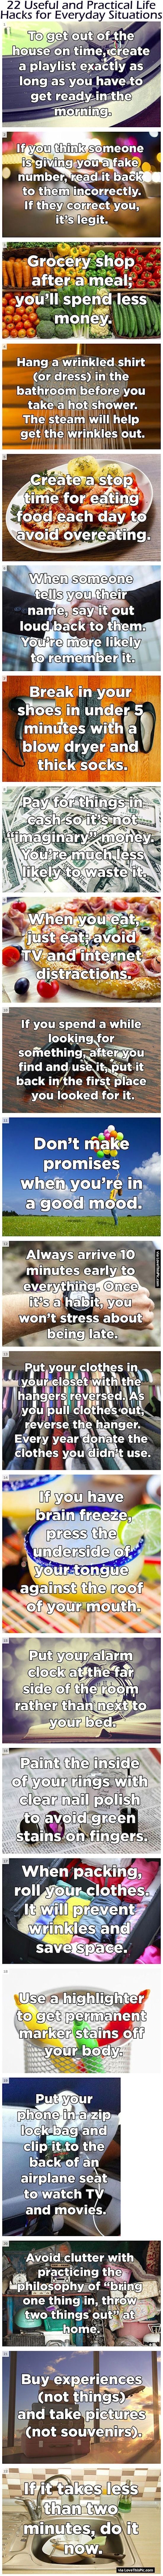 22 Useful and Practical Life Hacks for Everyday Situations diy diy ideas easy diy interesting tips life hacks life hack good to know fact. facts: